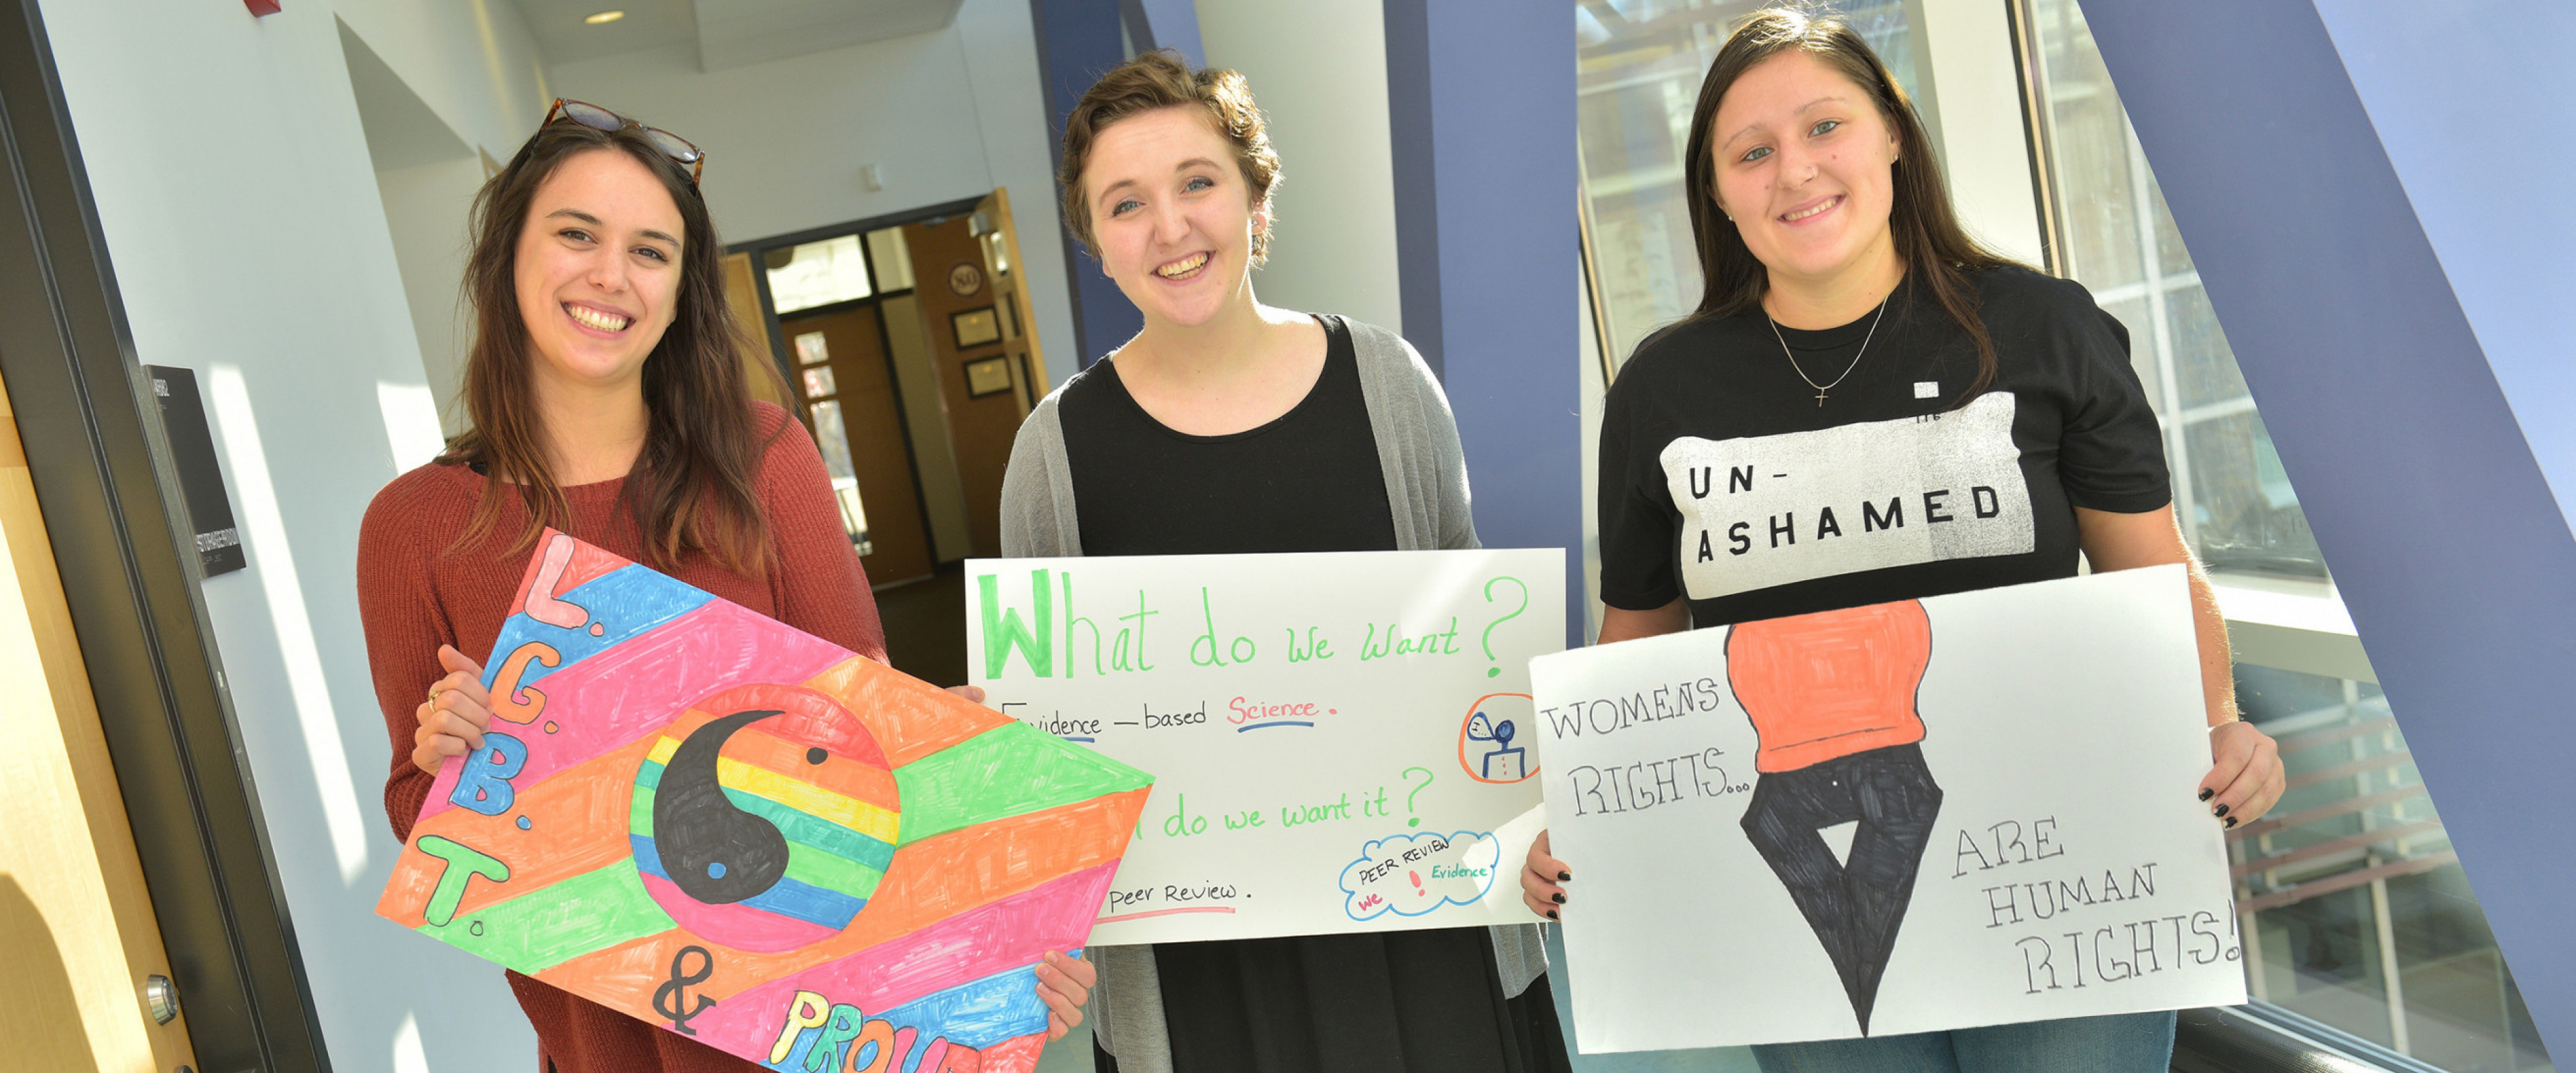 Students with social awareness signs